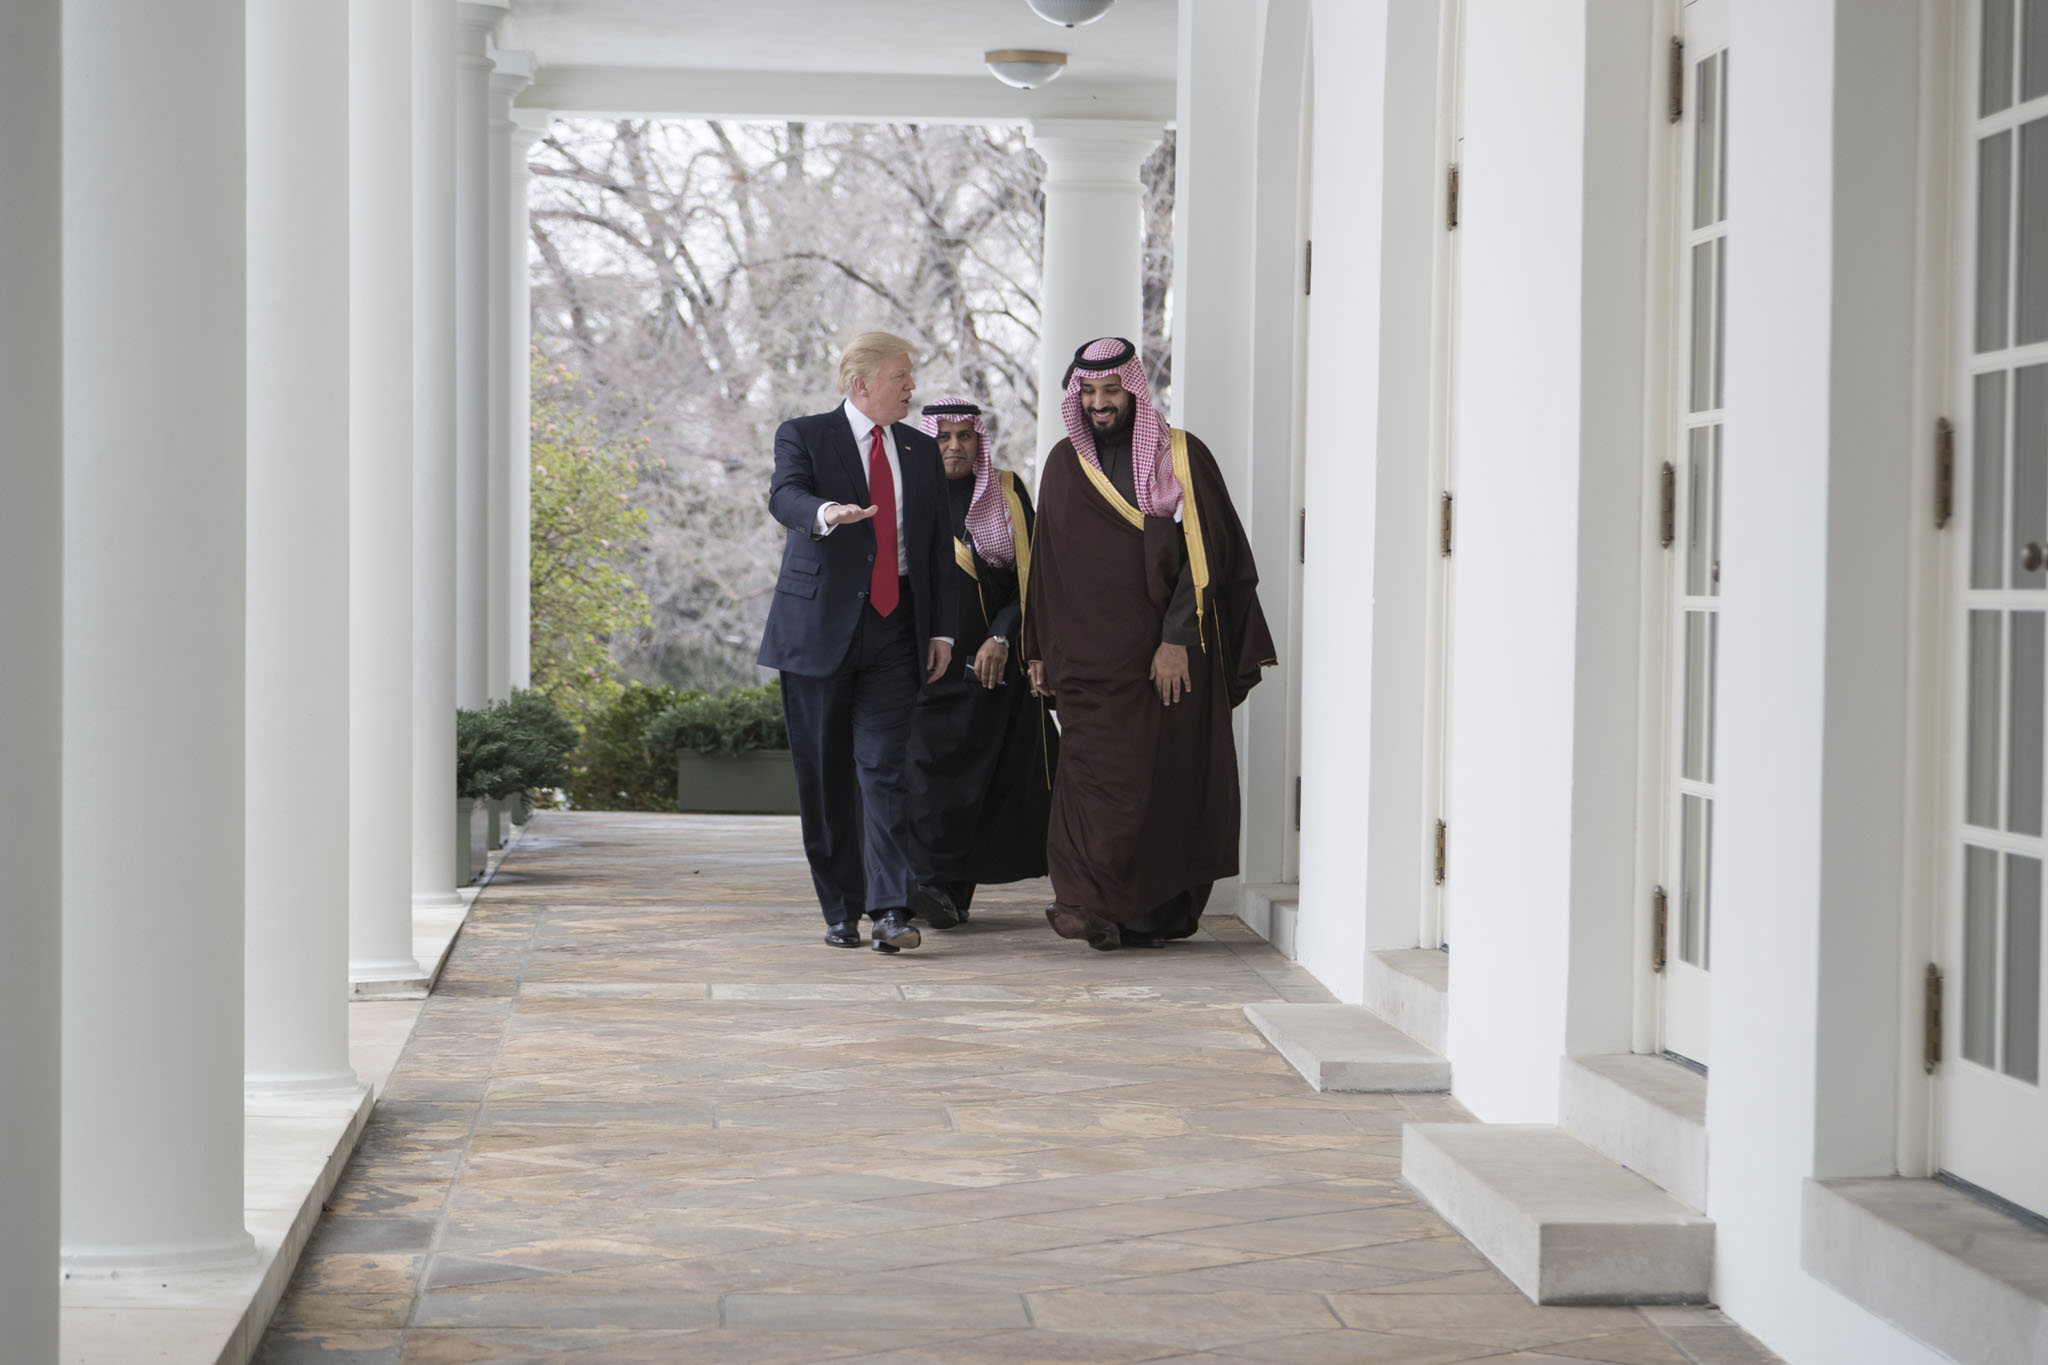 President Donald Trump with MbS in March 2017. (Official White House Photo by Shealah Craighead)